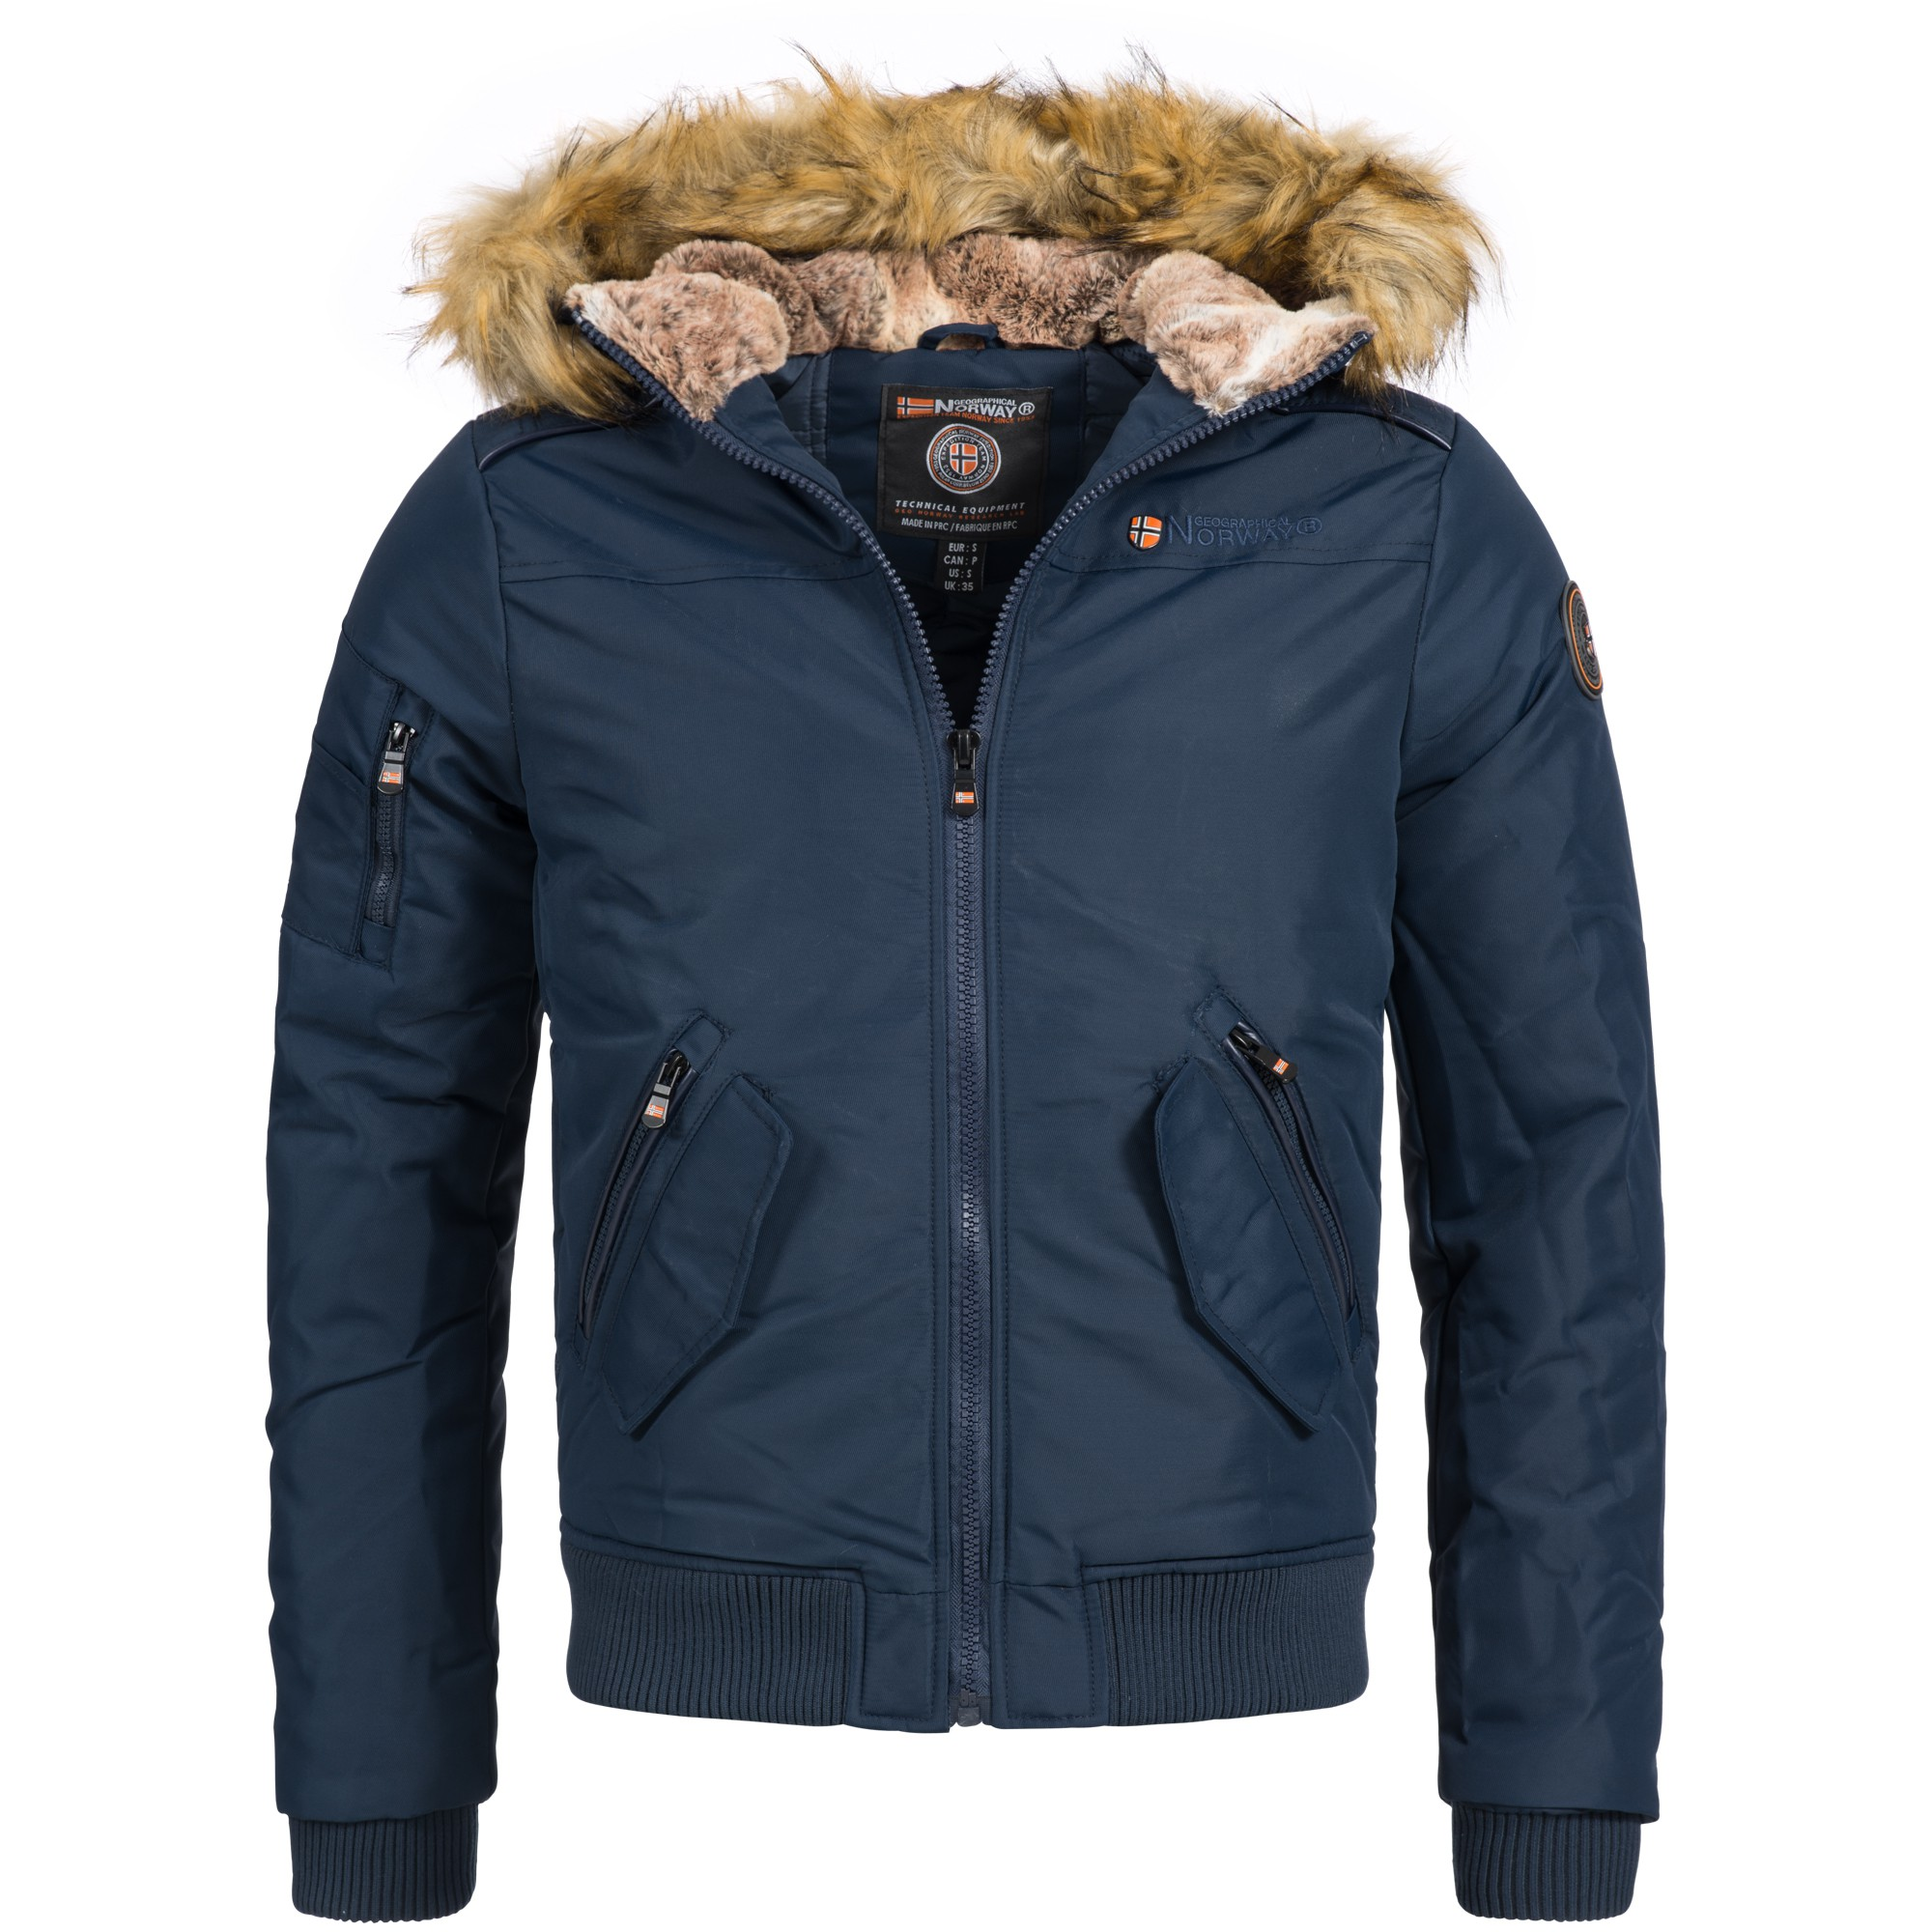 geographical norway columbo herren winterjacke jacke outdoor warm gr s xxxl 2 farben herren. Black Bedroom Furniture Sets. Home Design Ideas